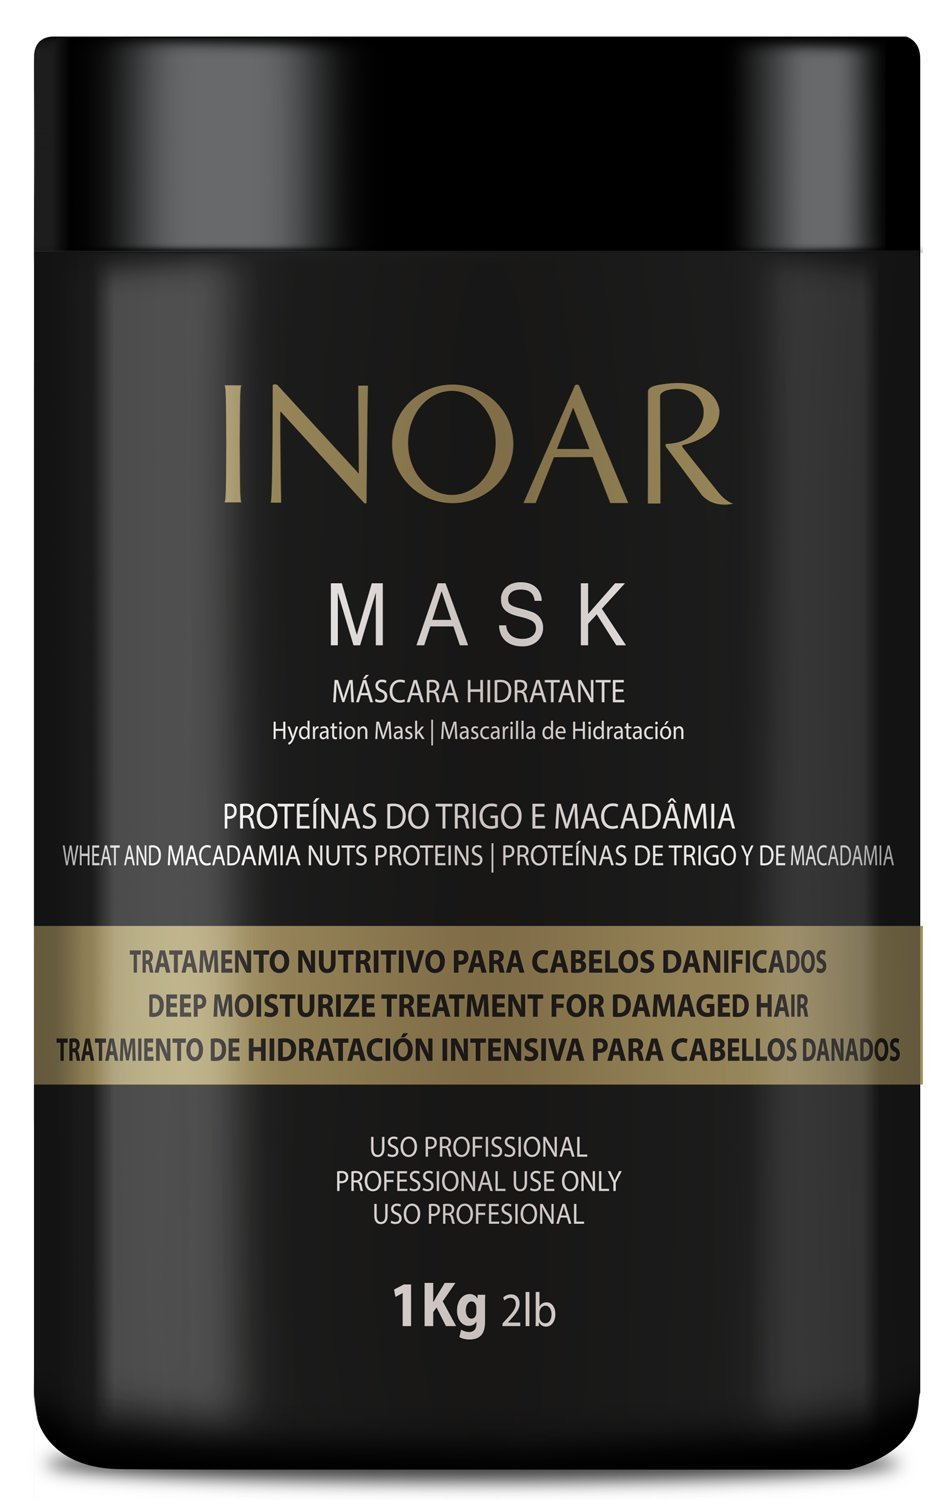 INOAR PROFESSIONAL - Macadamia Oil Premium Mask - Unique Blend of Macadamia Nut Protein and Wheat Protein to Condition and Intensely Moisturize the Hair (16.9 Ounces / 500 Grams)